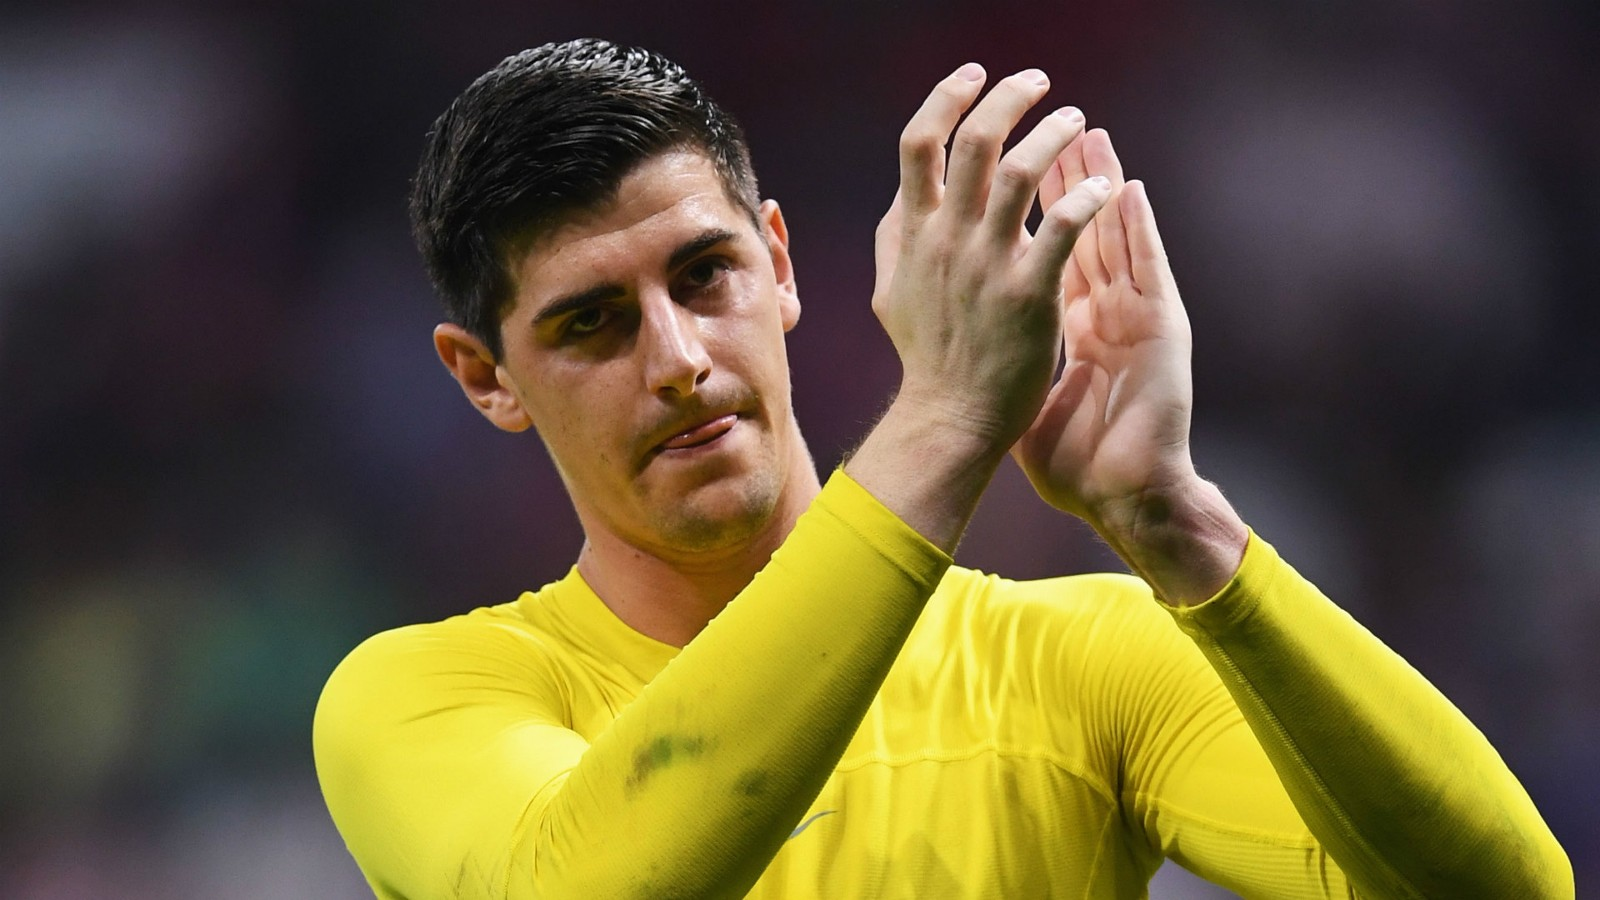 https://images.performgroup.com/di/library/GOAL/98/97/thibaut-courtois-chelsea_oudkjw65x2vx1fv98qsl5okcn.jpg?t=-933008546&quality=90&w=0&h=900%20480@2x,https://images.performgroup.com/di/library/GOAL/98/97/thibaut-courtois-chelsea_oudkjw65x2vx1fv98qsl5okcn.jpg?t=-933008546&quality=90&h=540%20580,https://images.performgroup.com/di/library/GOAL/98/97/thibaut-courtois-chelsea_oudkjw65x2vx1fv98qsl5okcn.jpg?t=-933008546&quality=90&w=0&h=1080%20580@2x,https://images.performgroup.com/di/library/GOAL/98/97/thibaut-courtois-chelsea_oudkjw65x2vx1fv98qsl5okcn.jpg?t=-933008546&quality=90&h=710%20740,https://images.performgroup.com/di/library/GOAL/98/97/thibaut-courtois-chelsea_oudkjw65x2vx1fv98qsl5okcn.jpg?t=-933008546&quality=90&w=0&h=1420%20740@2x,https://images.performgroup.com/di/library/GOAL/98/97/thibaut-courtois-chelsea_oudkjw65x2vx1fv98qsl5okcn.jpg?t=-933008546&quality=90&h=630%20980,https://images.performgroup.com/di/library/GOAL/98/97/thibaut-courtois-chelsea_oudkjw65x2vx1fv98qsl5okcn.jpg?t=-933008546&quality=90&w=0&h=1260%20980@2x,https://images.performgroup.com/di/library/GOAL/98/97/thibaut-courtois-chelsea_oudkjw65x2vx1fv98qsl5okcn.jpg?t=-933008546&quality=90&h=800%201580,https://images.performgroup.com/di/library/GOAL/98/97/thibaut-courtois-chelsea_oudkjw65x2vx1fv98qsl5okcn.jpg?t=-933008546&quality=90&w=0&h=1600%201580@2x,https://images.performgroup.com/di/library/GOAL/98/97/thibaut-courtois-chelsea_oudkjw65x2vx1fv98qsl5okcn.jpg?t=-933008546&quality=90&h=300,https://images.performgroup.com/di/library/GOAL/98/97/thibaut-courtois-chelsea_oudkjw65x2vx1fv98qsl5okcn.jpg?t=-933008546&quality=90&w=0&h=600%20@2x%22%3E%20%3Cmeta%20itemprop=%22url%22%20content=%22https://images.performgroup.com/di/library/GOAL/98/97/thibaut-courtois-chelsea_oudkjw65x2vx1fv98qsl5okcn.jpg?t=-933008546&quality=90&w=1280%22%3E%20%3Cmeta%20itemprop=%22width%22%20content=%221280%22%3E%20%3Cmeta%20itemprop=%22height%22%20content=%22720%22%3E%20%3Cnoscript%3E%20%3Cimg%20src=%22https://images.perfor